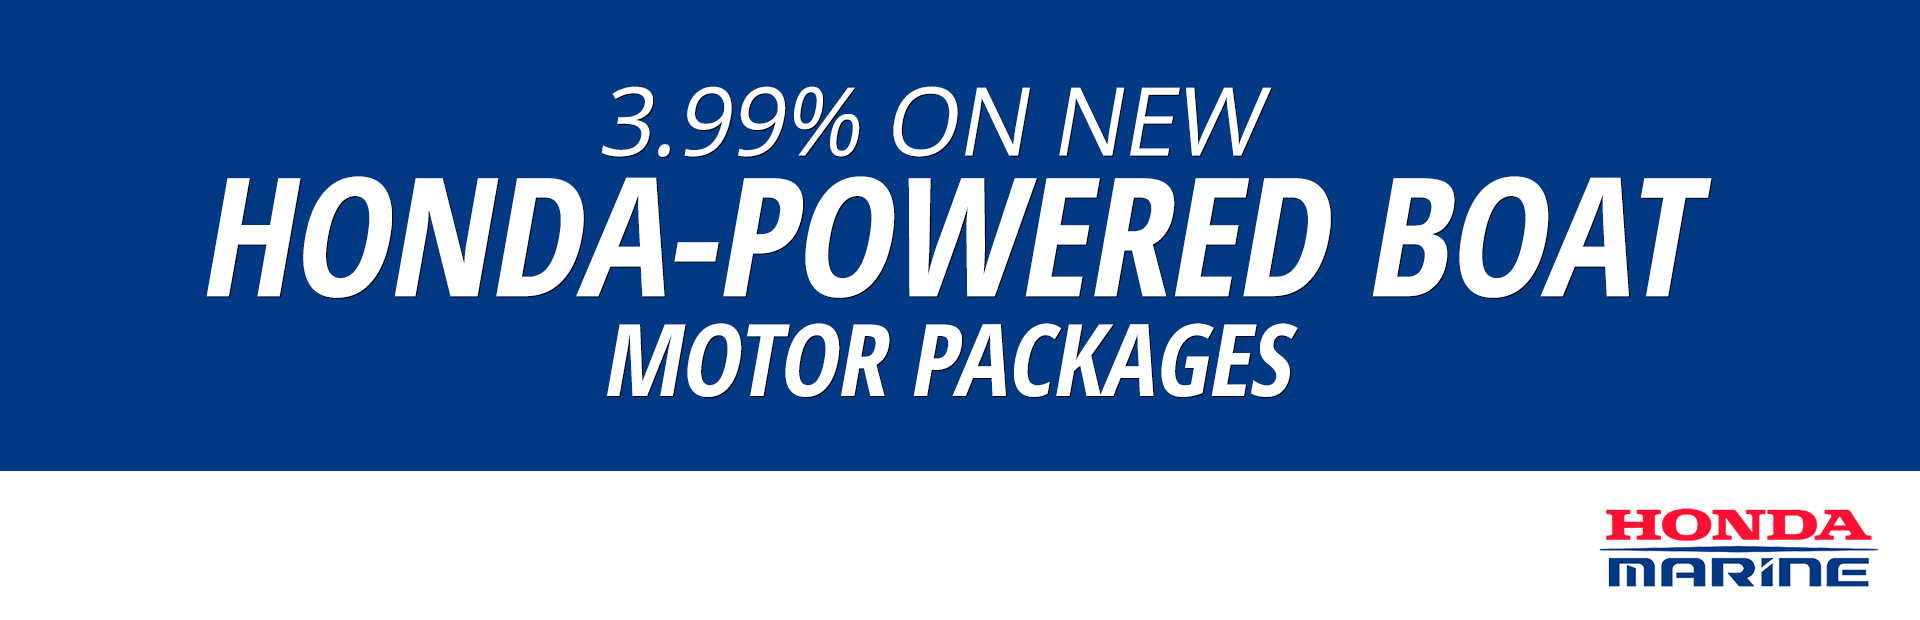 Honda Marine: 3.99% on New Honda-Powered Boat/Motor Packages